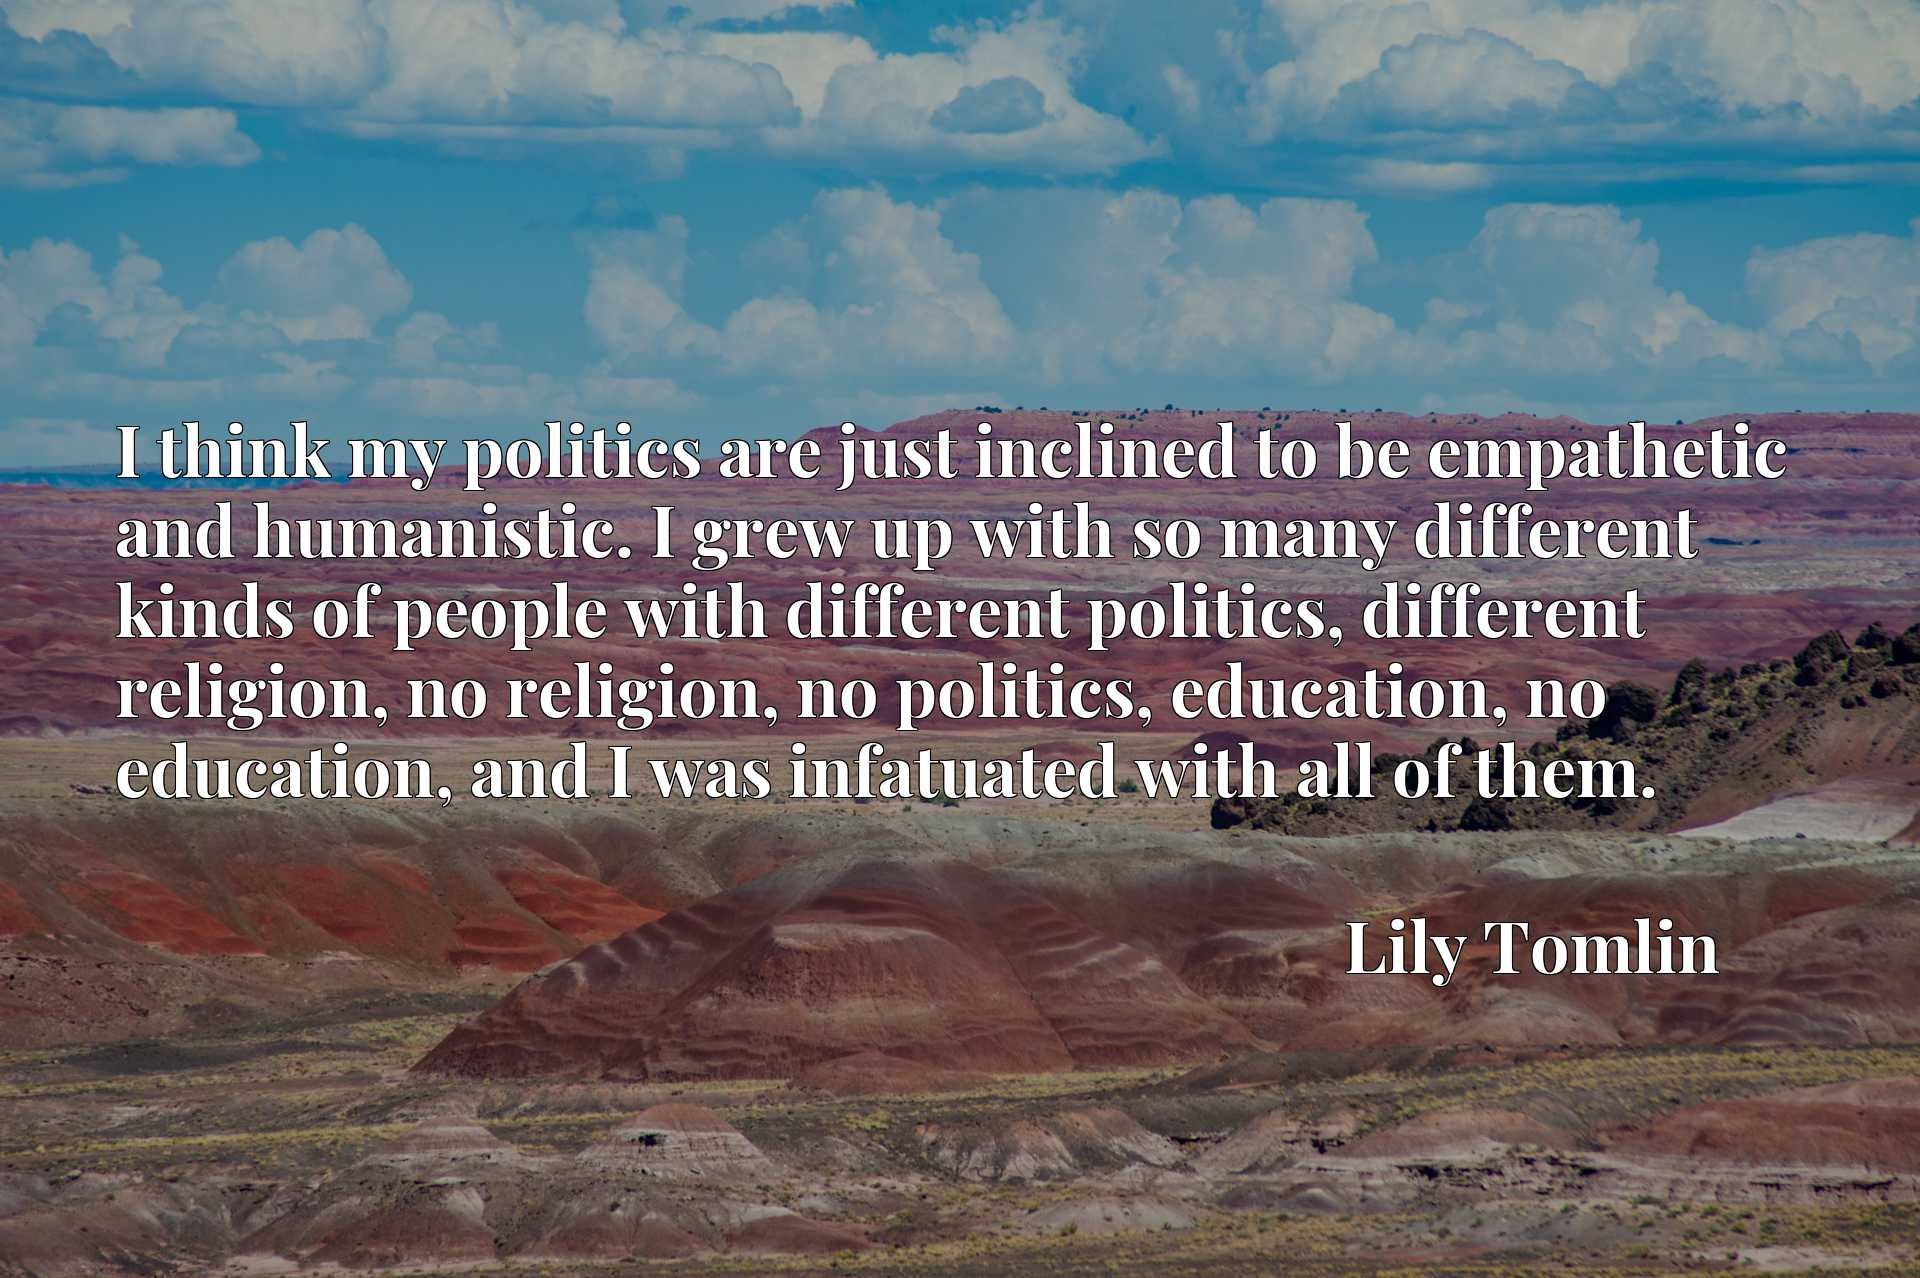 I think my politics are just inclined to be empathetic and humanistic. I grew up with so many different kinds of people with different politics, different religion, no religion, no politics, education, no education, and I was infatuated with all of them.